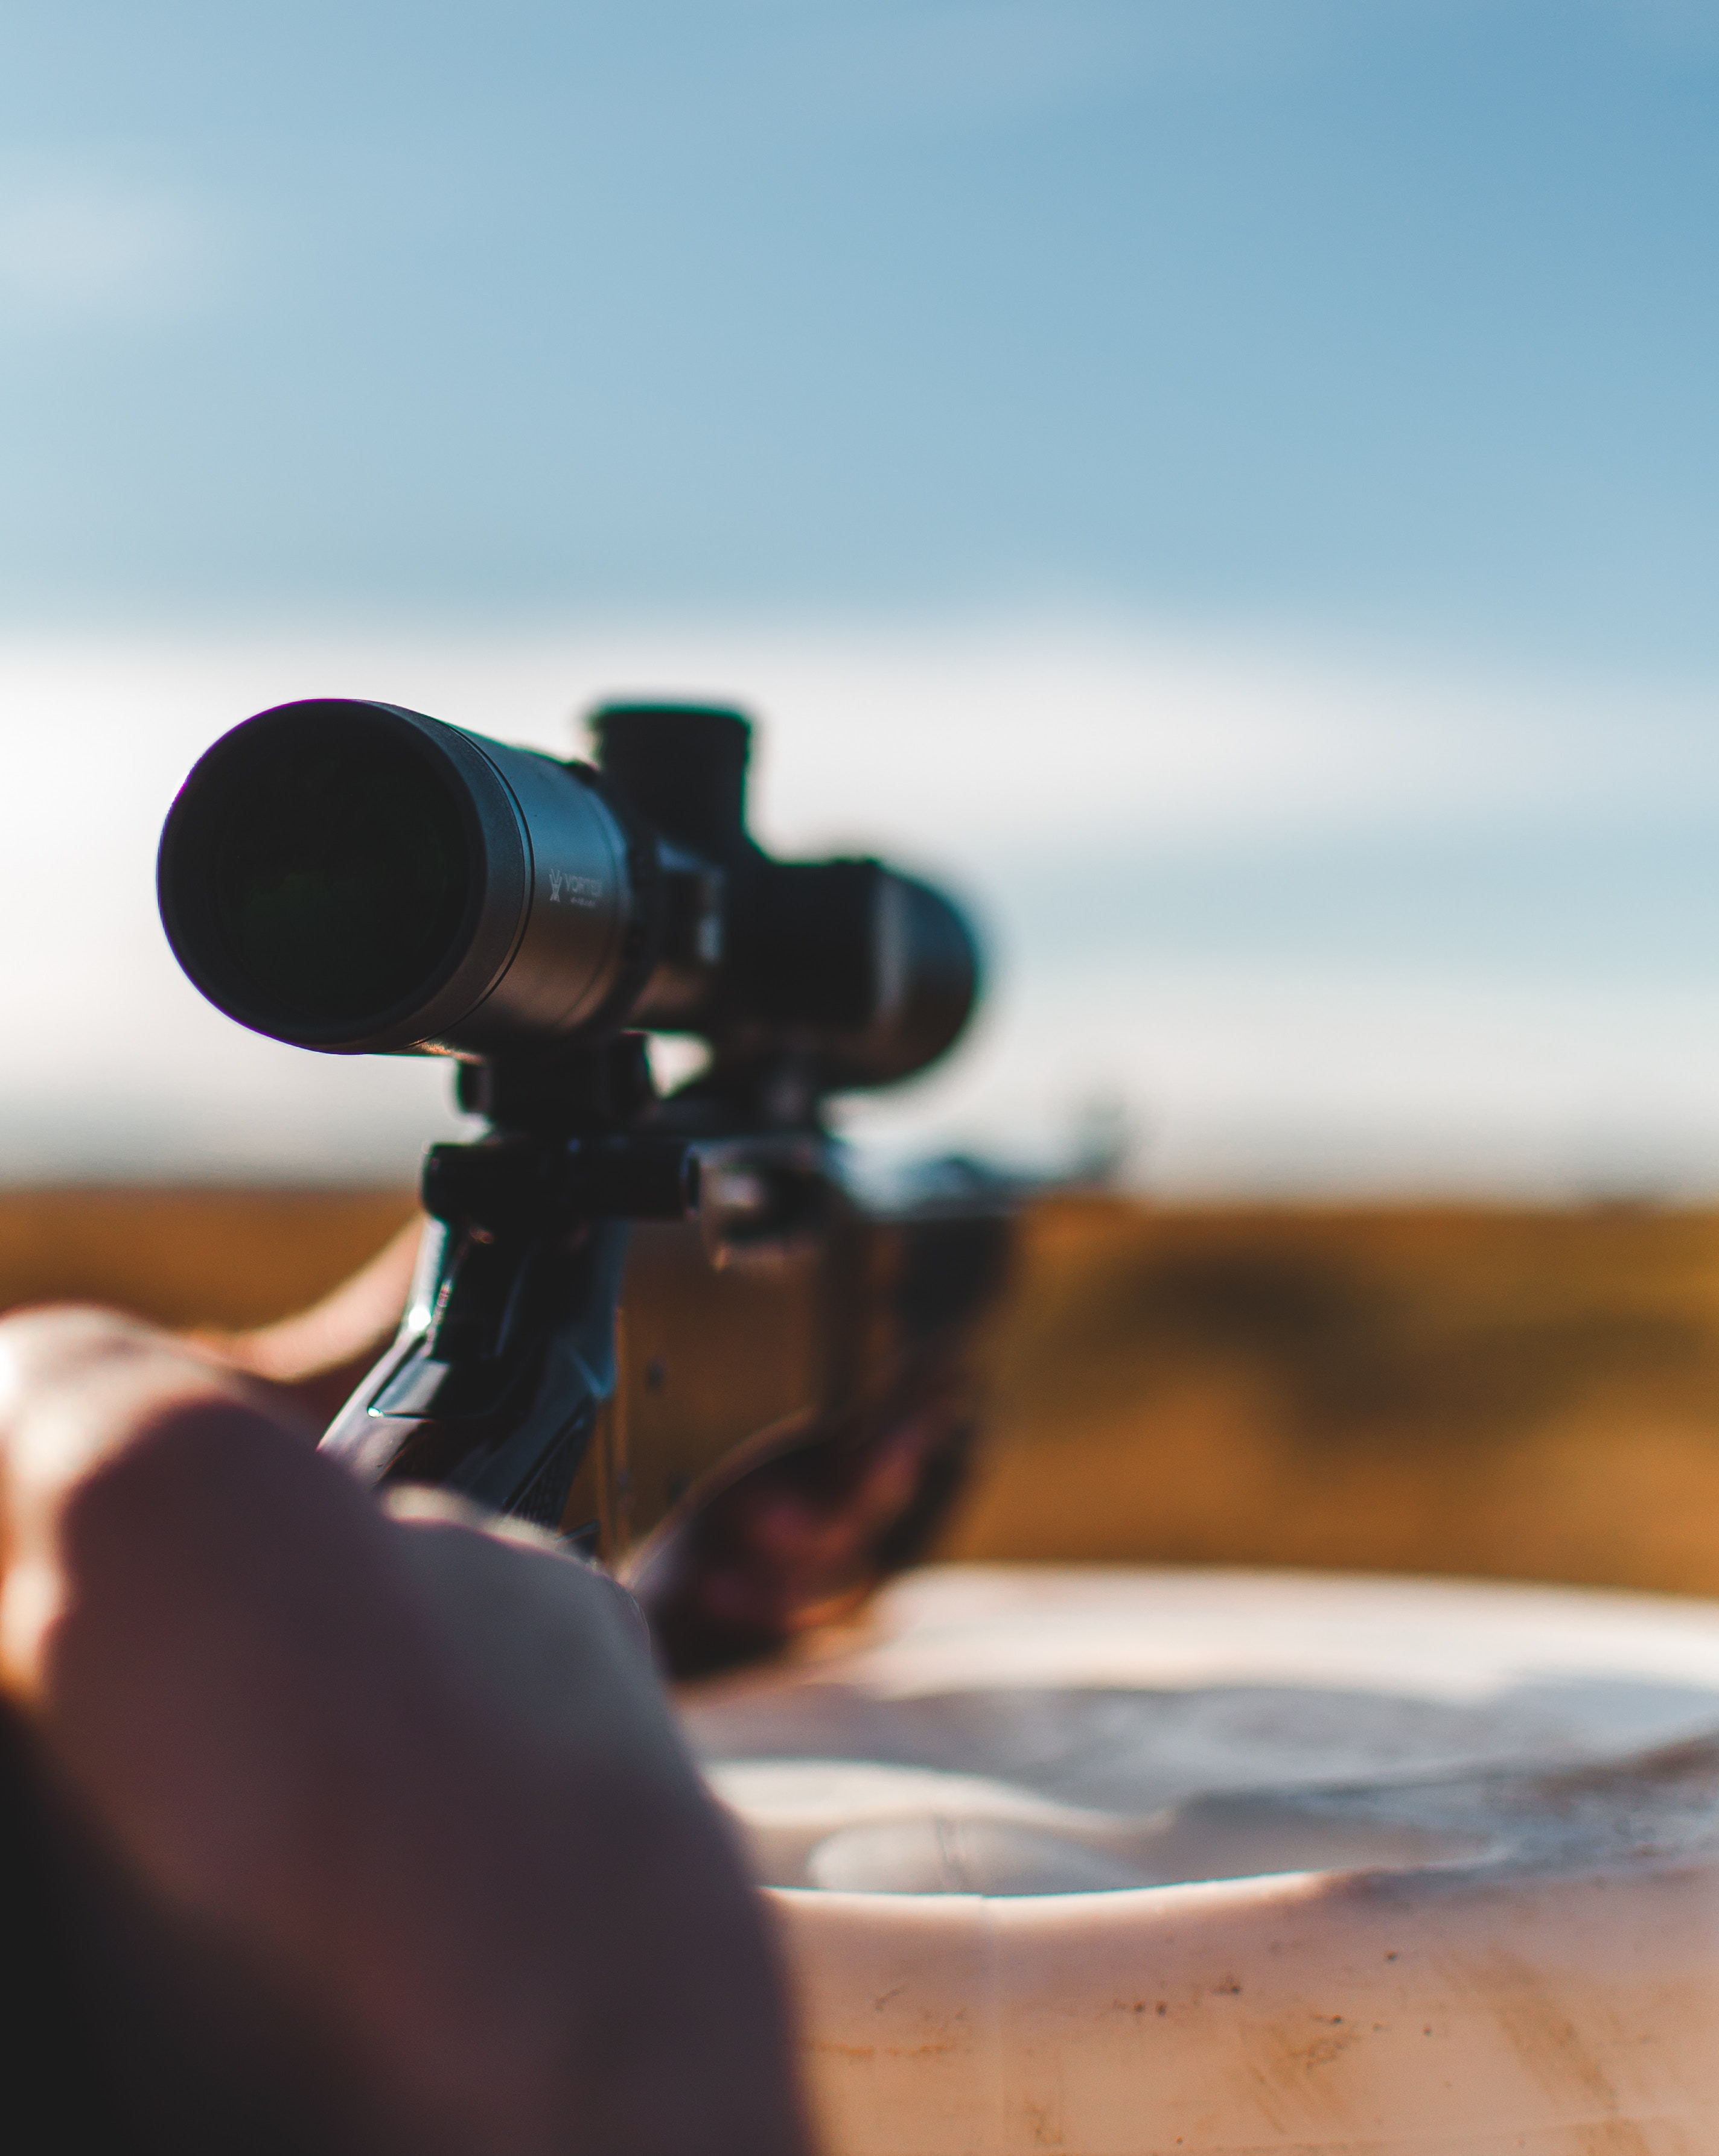 close-up photo focused on a 4x scope attached to a firearm being used during hunting activity